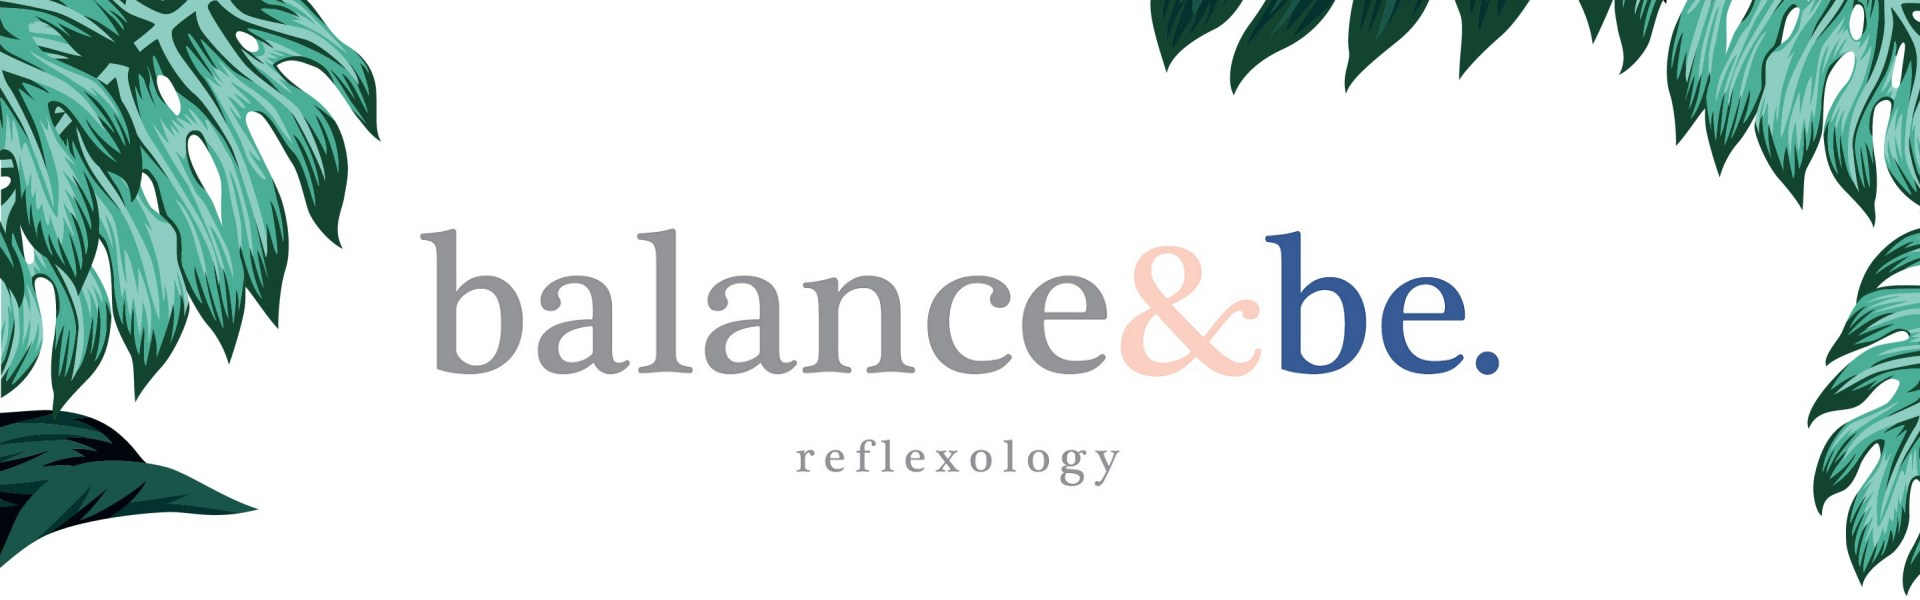 Balance & Be Reflexology